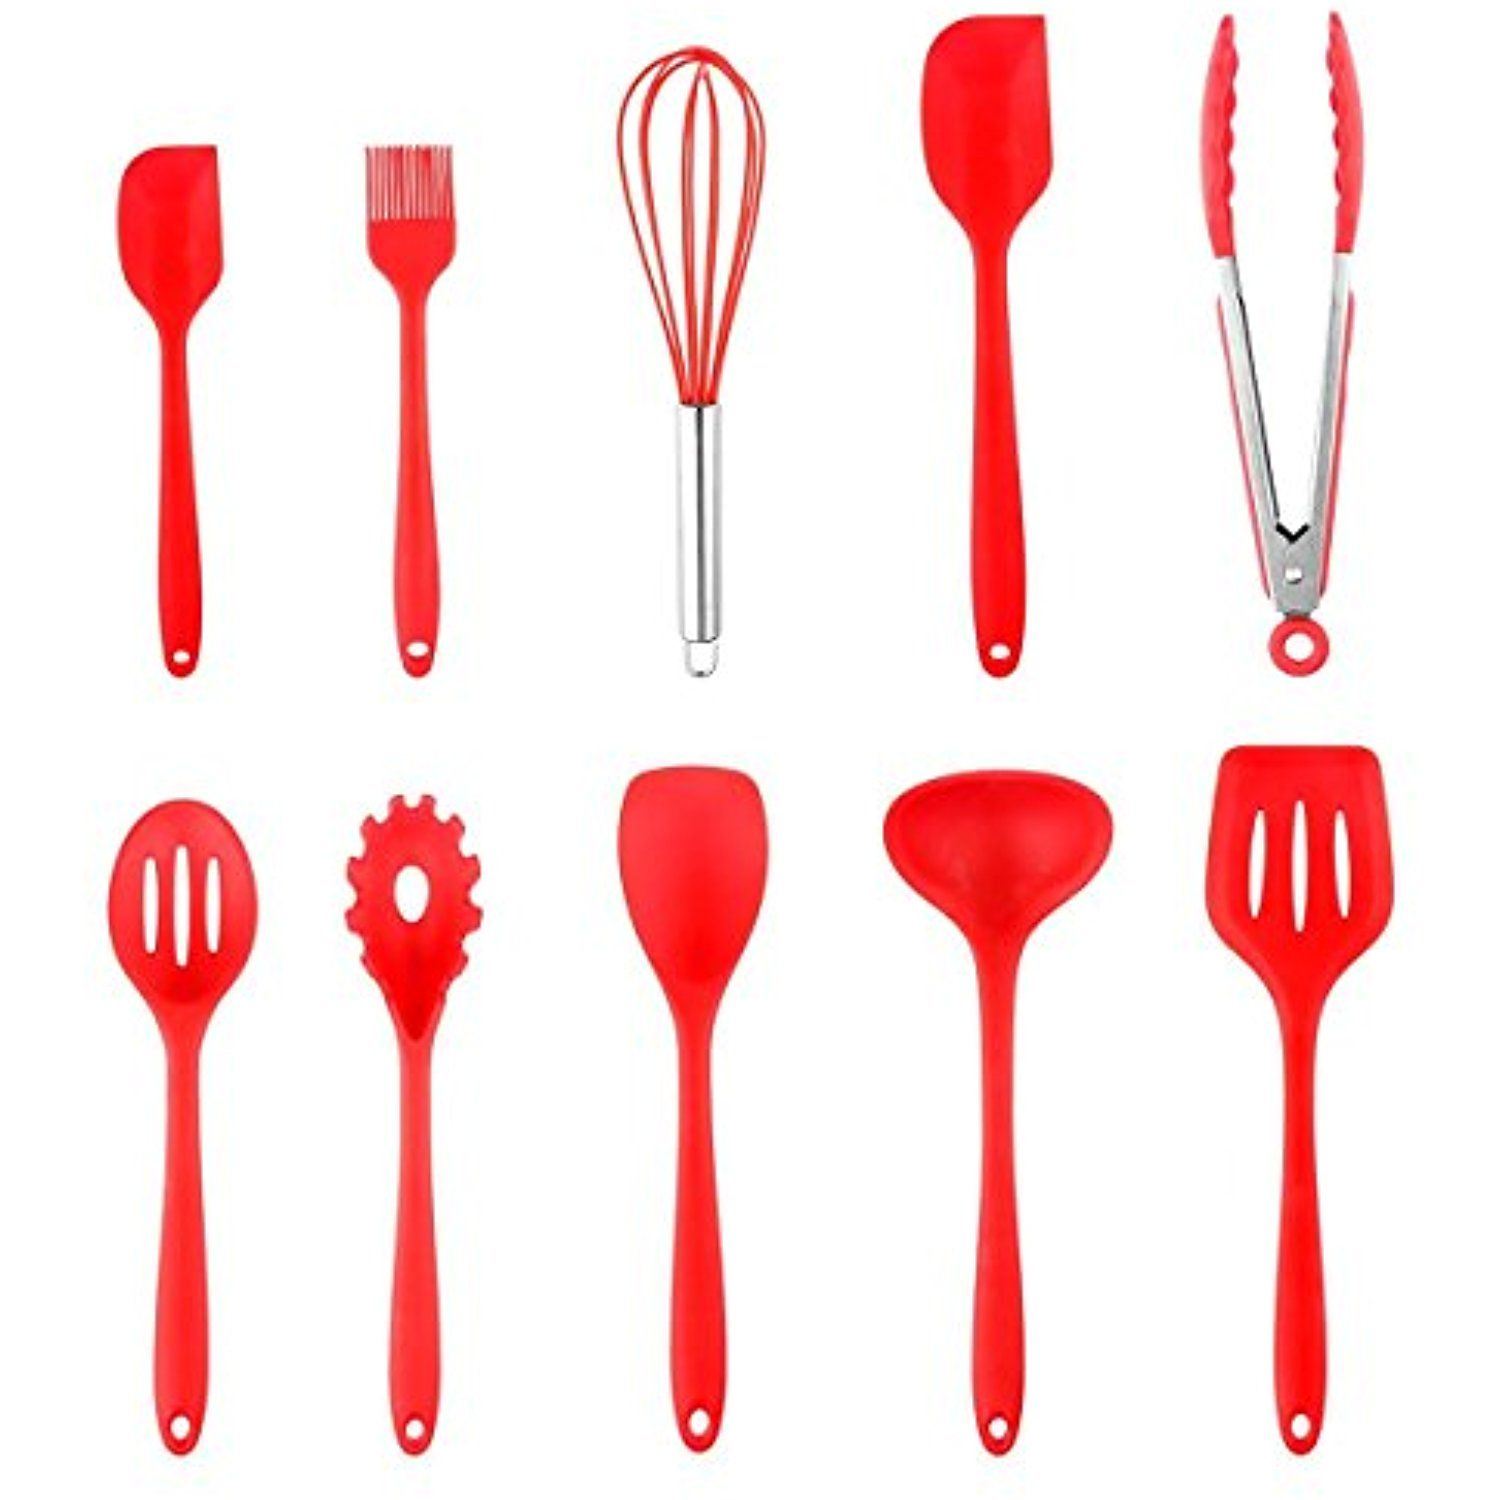 Silicone Cooking Utensils Powstro 10 PCS Hygienic Solid Coating